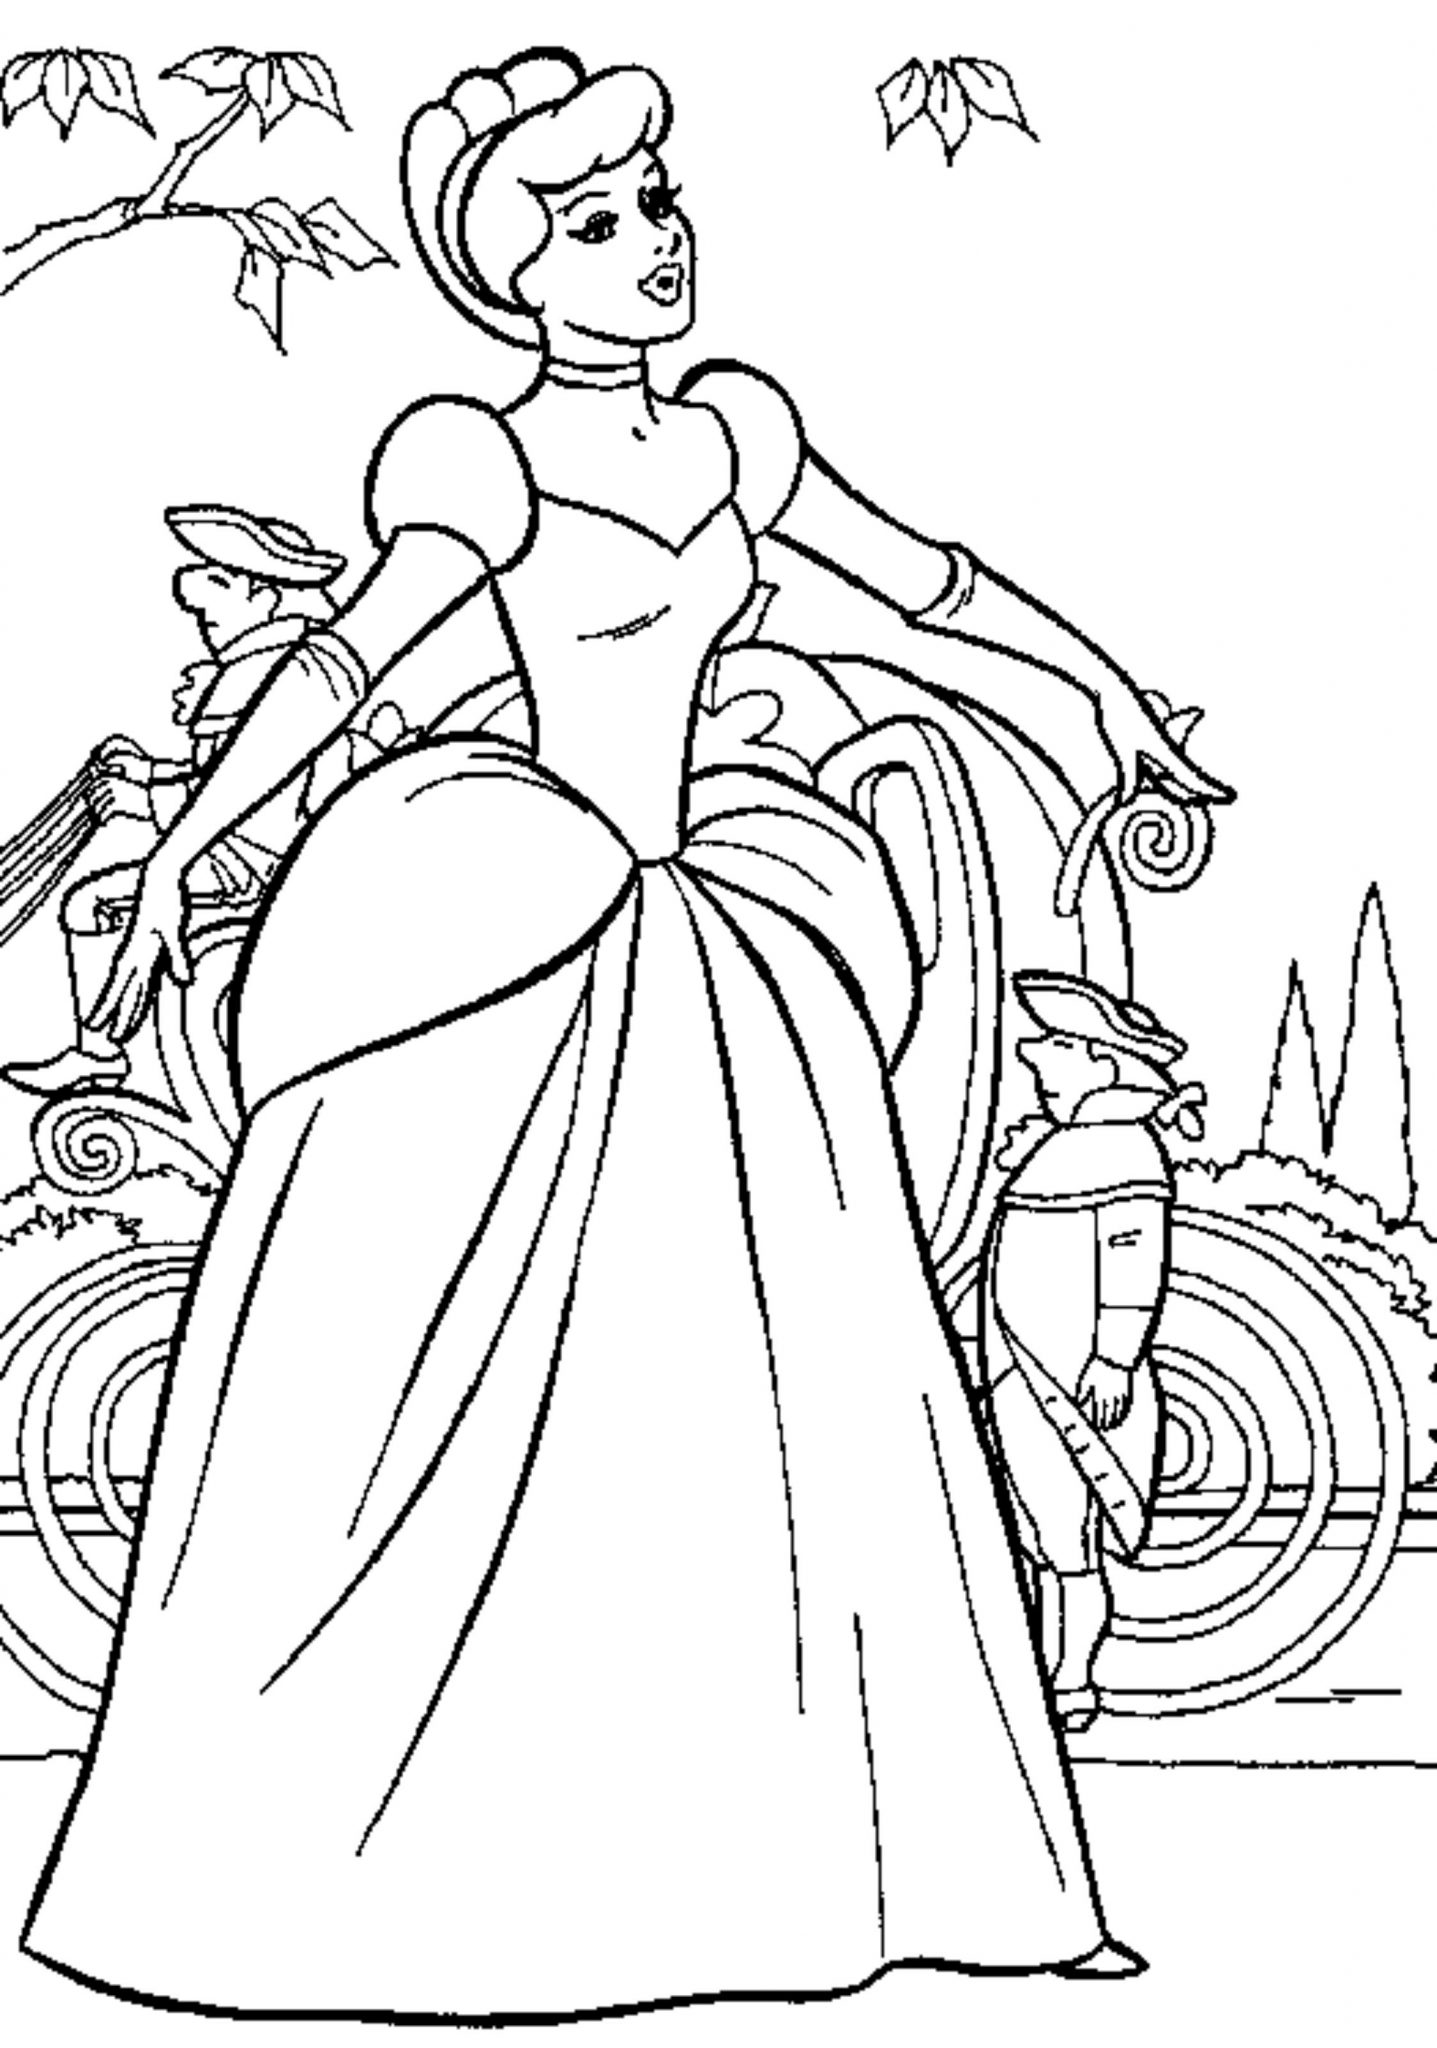 coloring princess pictures top 35 free printable princess coloring pages online princess pictures coloring